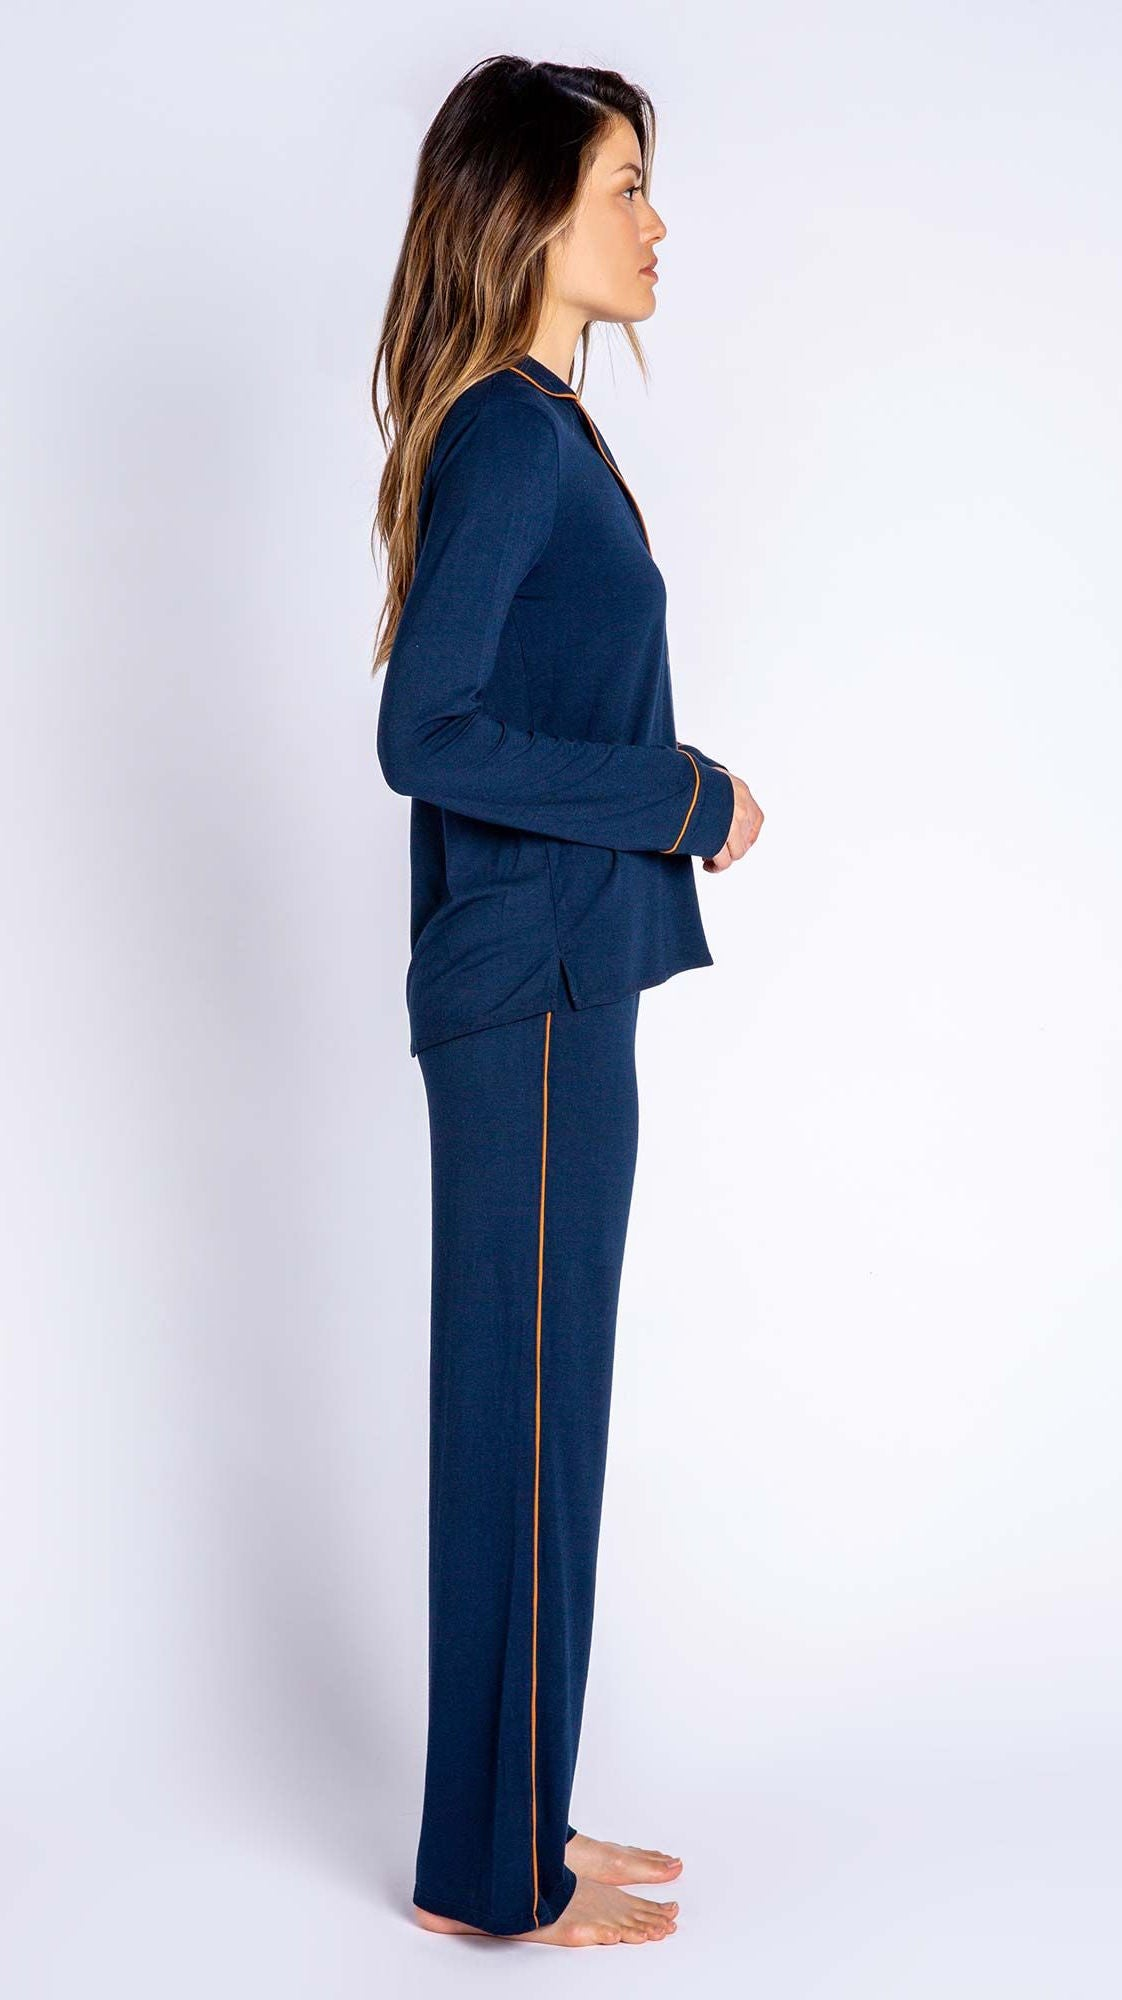 Side profile of woman wearing matching navy pj top and pj bottom set from PJ Salvage